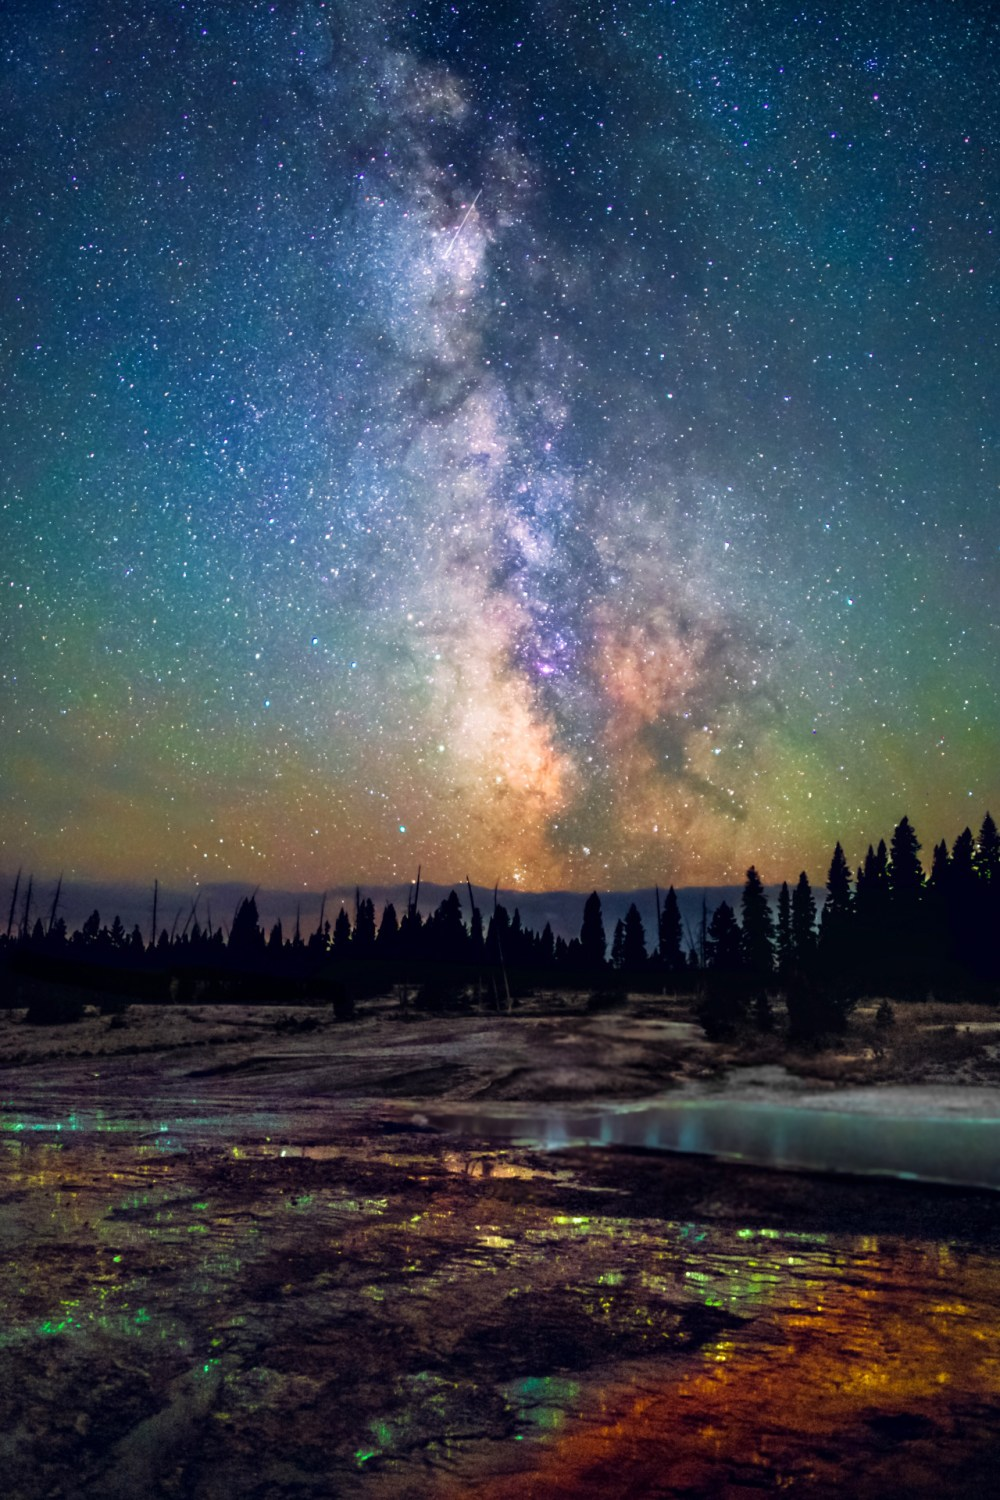 In every season, at every hour, Yellowstone National Park in Wyoming is a stunning and surprising landscape. Remote enough for dark skies to allow the Milky Way to shine and featuring steam rising from hot springs tinted with colorful bacteria and reflecting the aurora borealis, a night in the park offers enough wonders for a lifetime. Photo courtesy of Bryony Richards. Posted on Tumblr by the US Department of the Interior, 3/27/16.